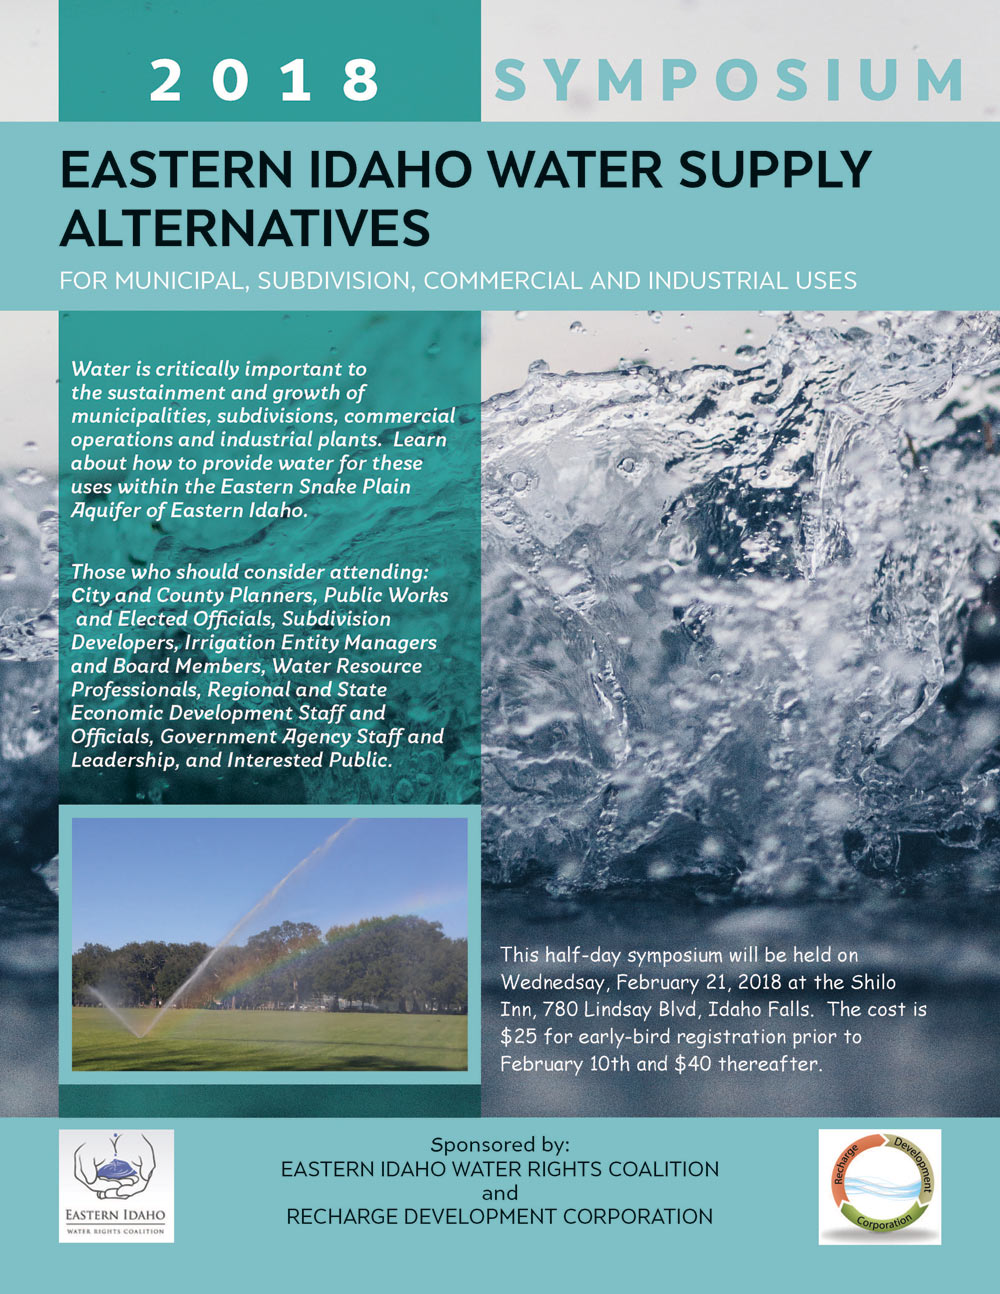 2018 Eastern Idaho Water Supply Alternatives Symposium - Recharge Development Corporation